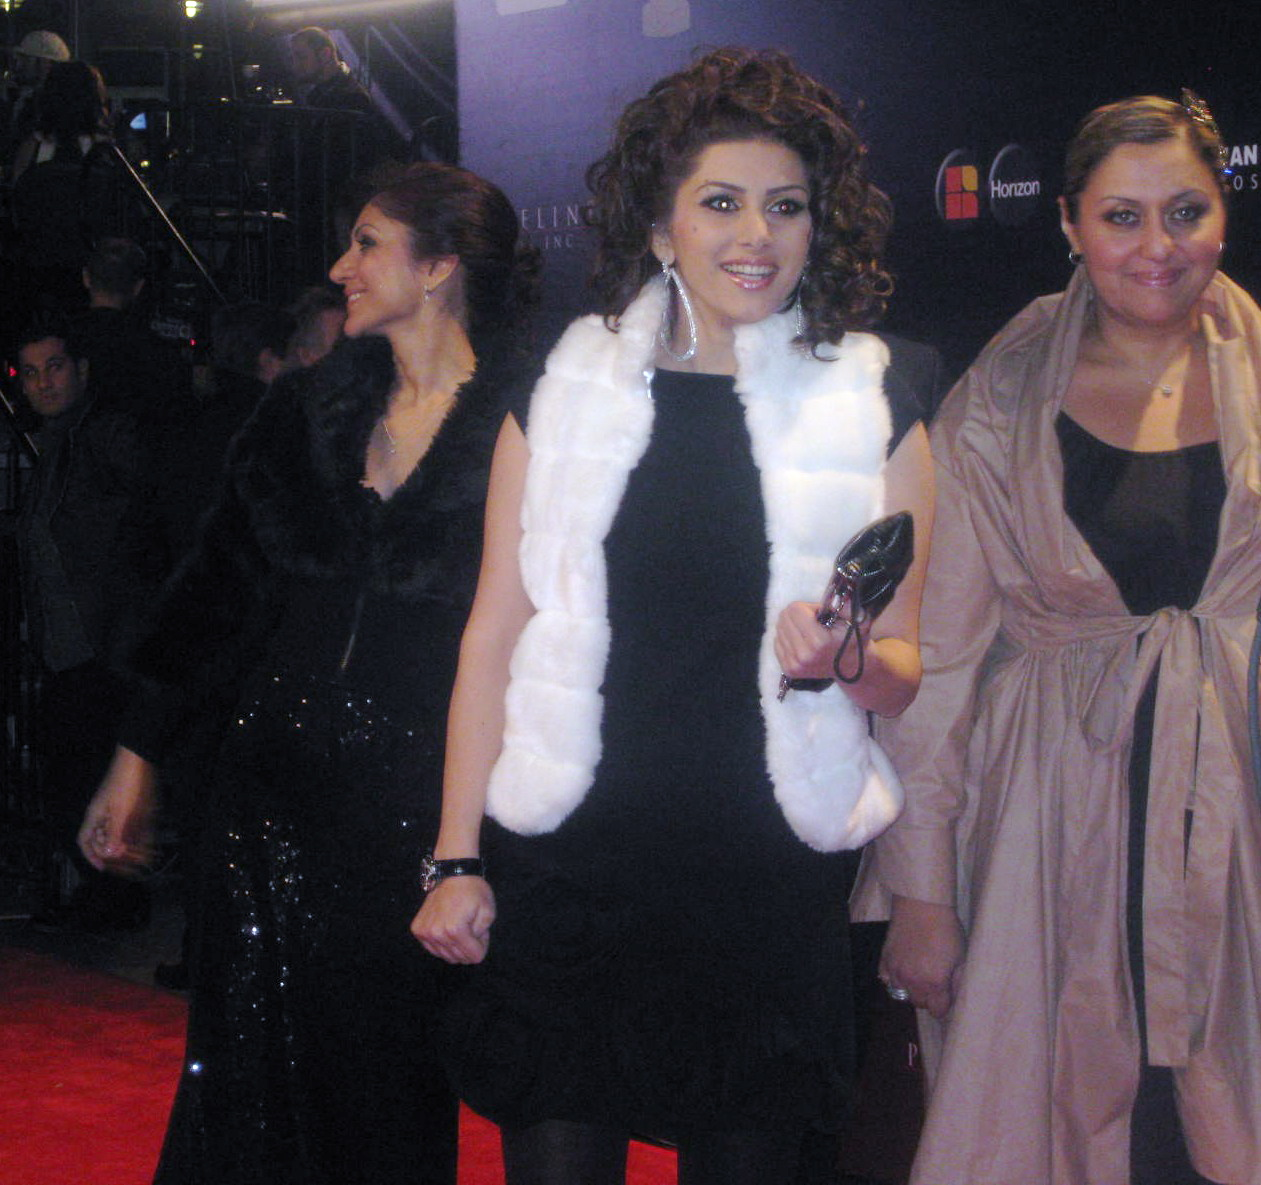 Nune Yesayan, Sofi Mkheyan and Shushan Petrosyan